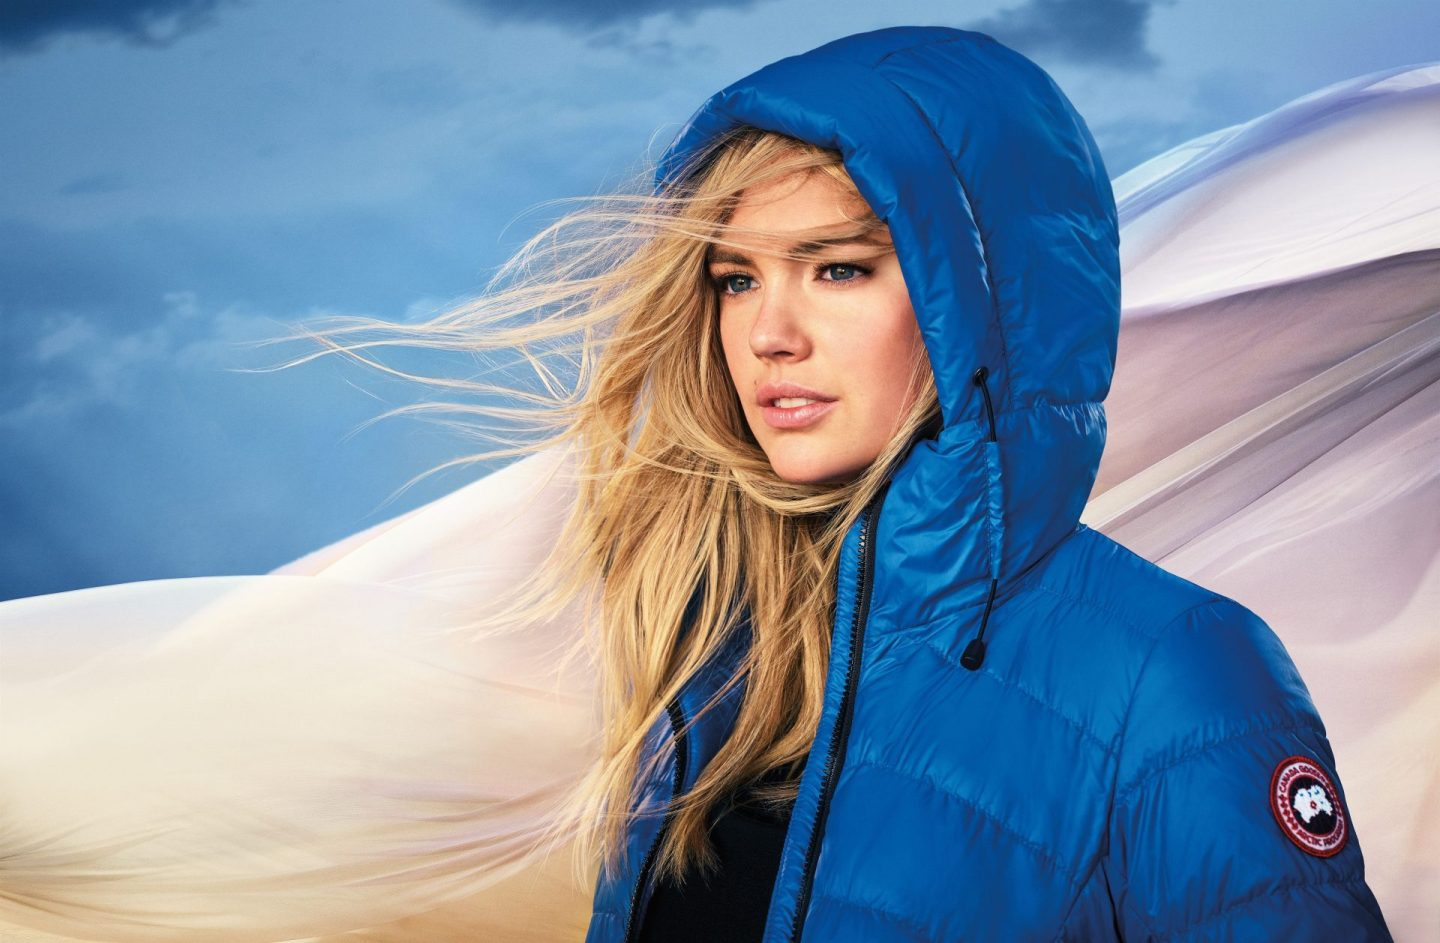 Canada Goose Teams with Model Kate Upton